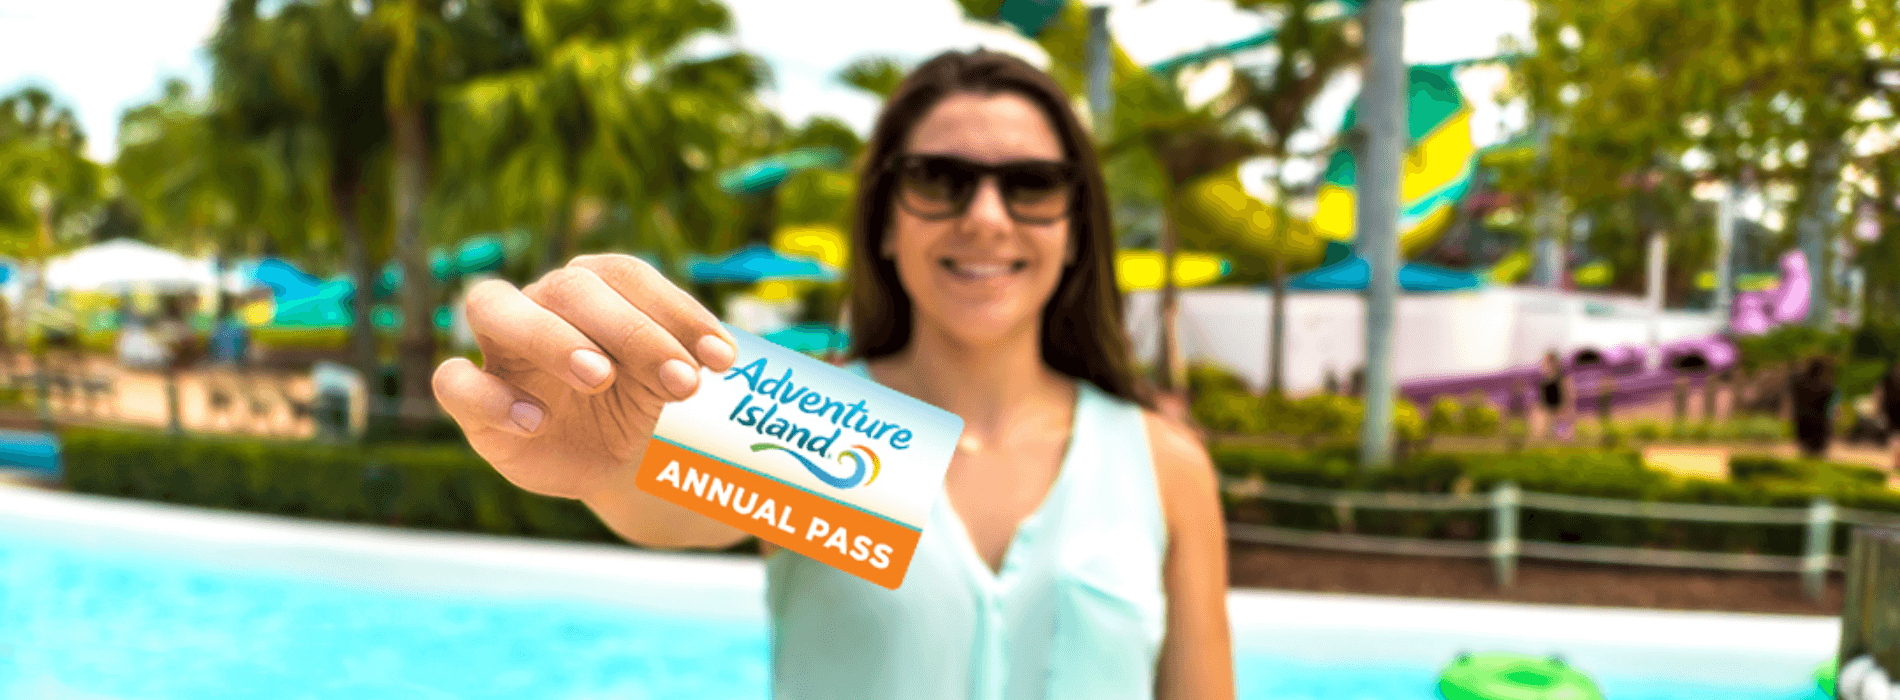 Adventure Island Pass Members receive many great benefits such as unlimited admission, free parking, discounts on dining and merchandise, and more!